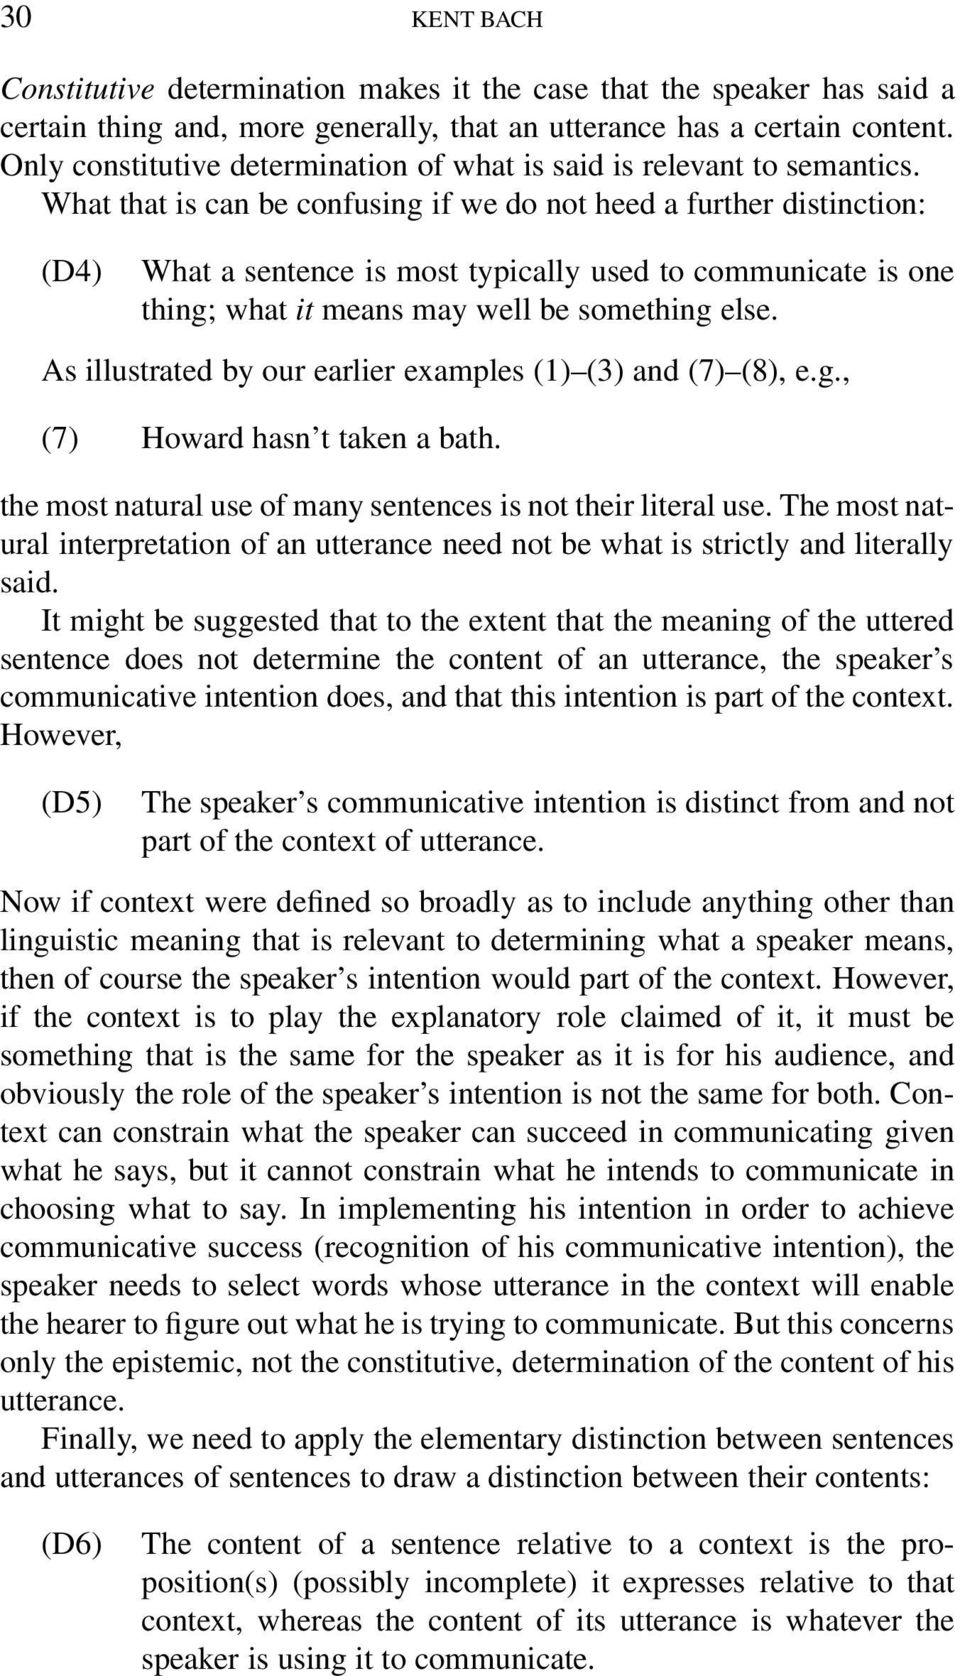 What that is can be confusing if we do not heed a further distinction: (D4) What a sentence is most typically used to communicate is one thing; what it means may well be something else.